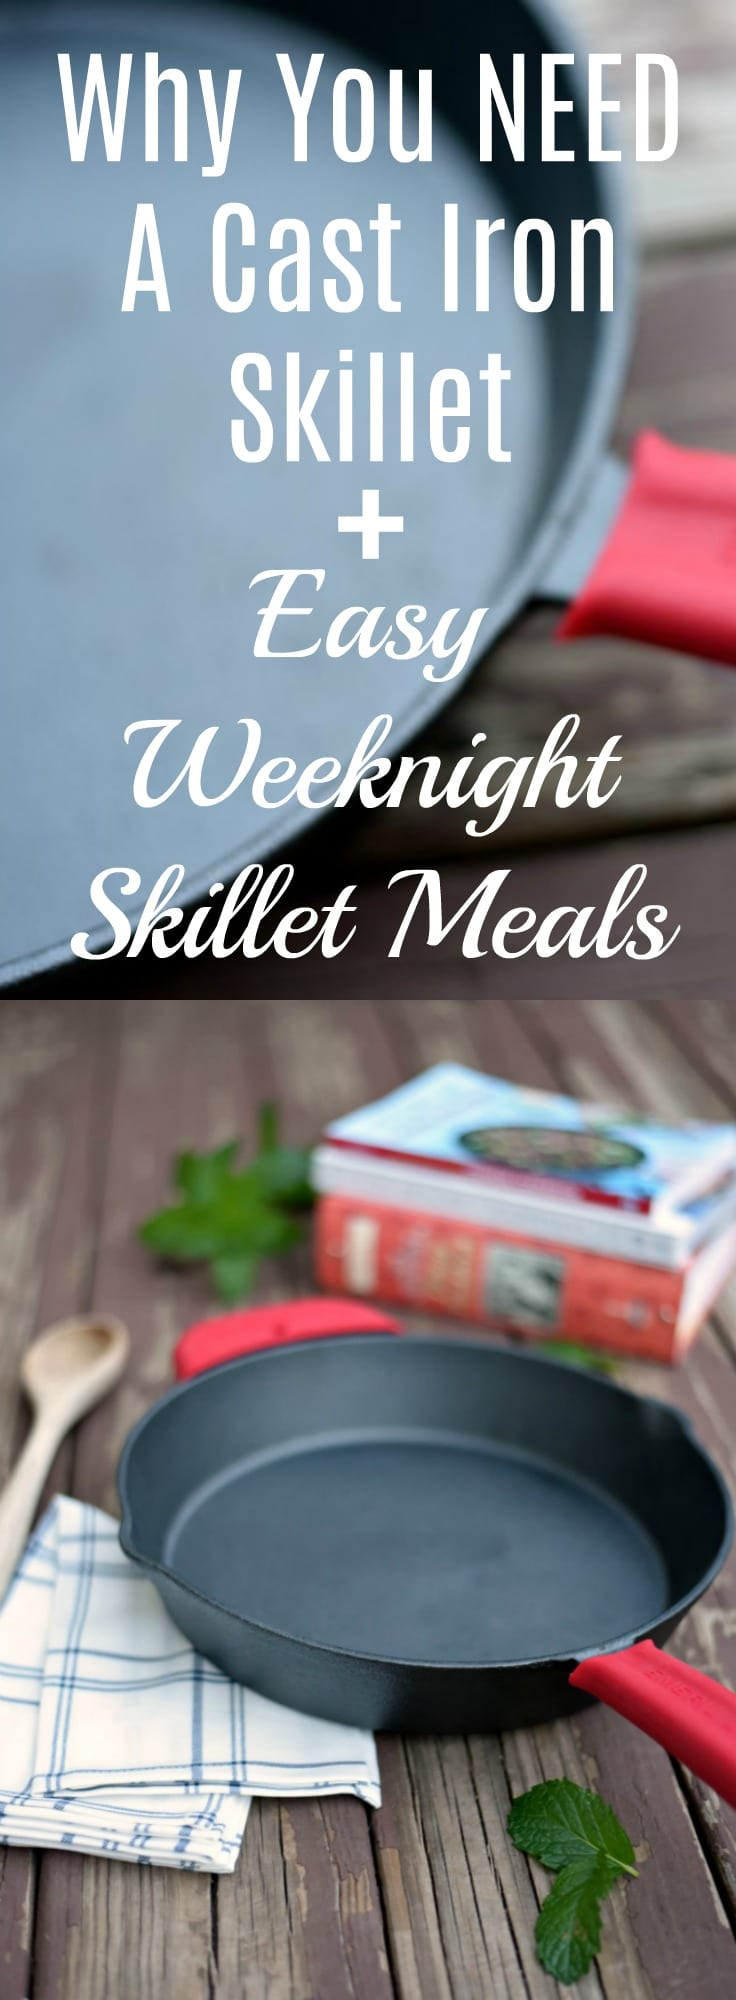 Make dinner easier with this awesome selection of easy and delicious cast iron skillet meals! Perfect for any night of the week.